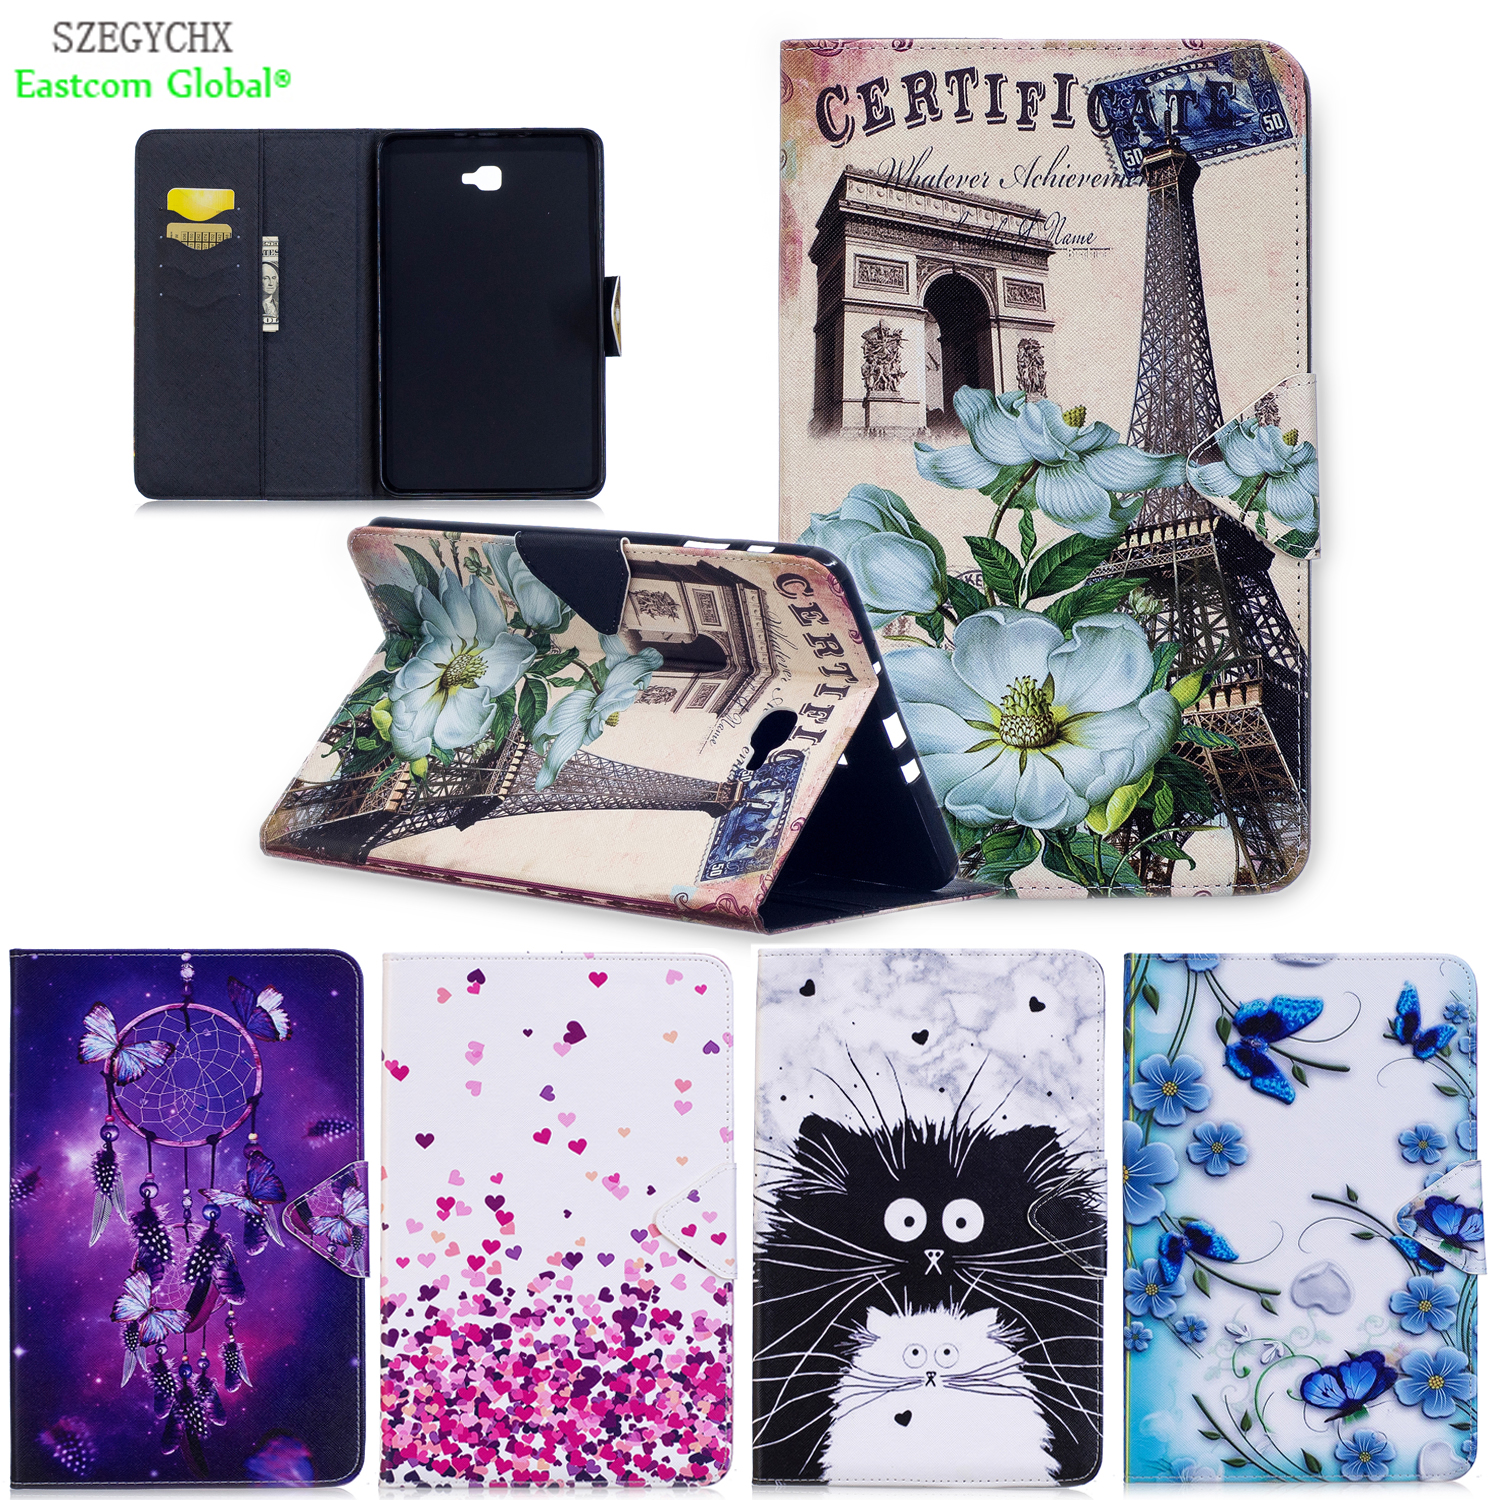 Cover For Samsung Galaxy Tab A 10.1 2016 T580 T585 SM-T585,Cartoon Stand Flip PU Leather Tablet Case For Kids Gift case for samsung galaxy tab a 9 7 t550 inch sm t555 tablet pu leather stand flip sm t550 p550 protective skin cover stylus pen